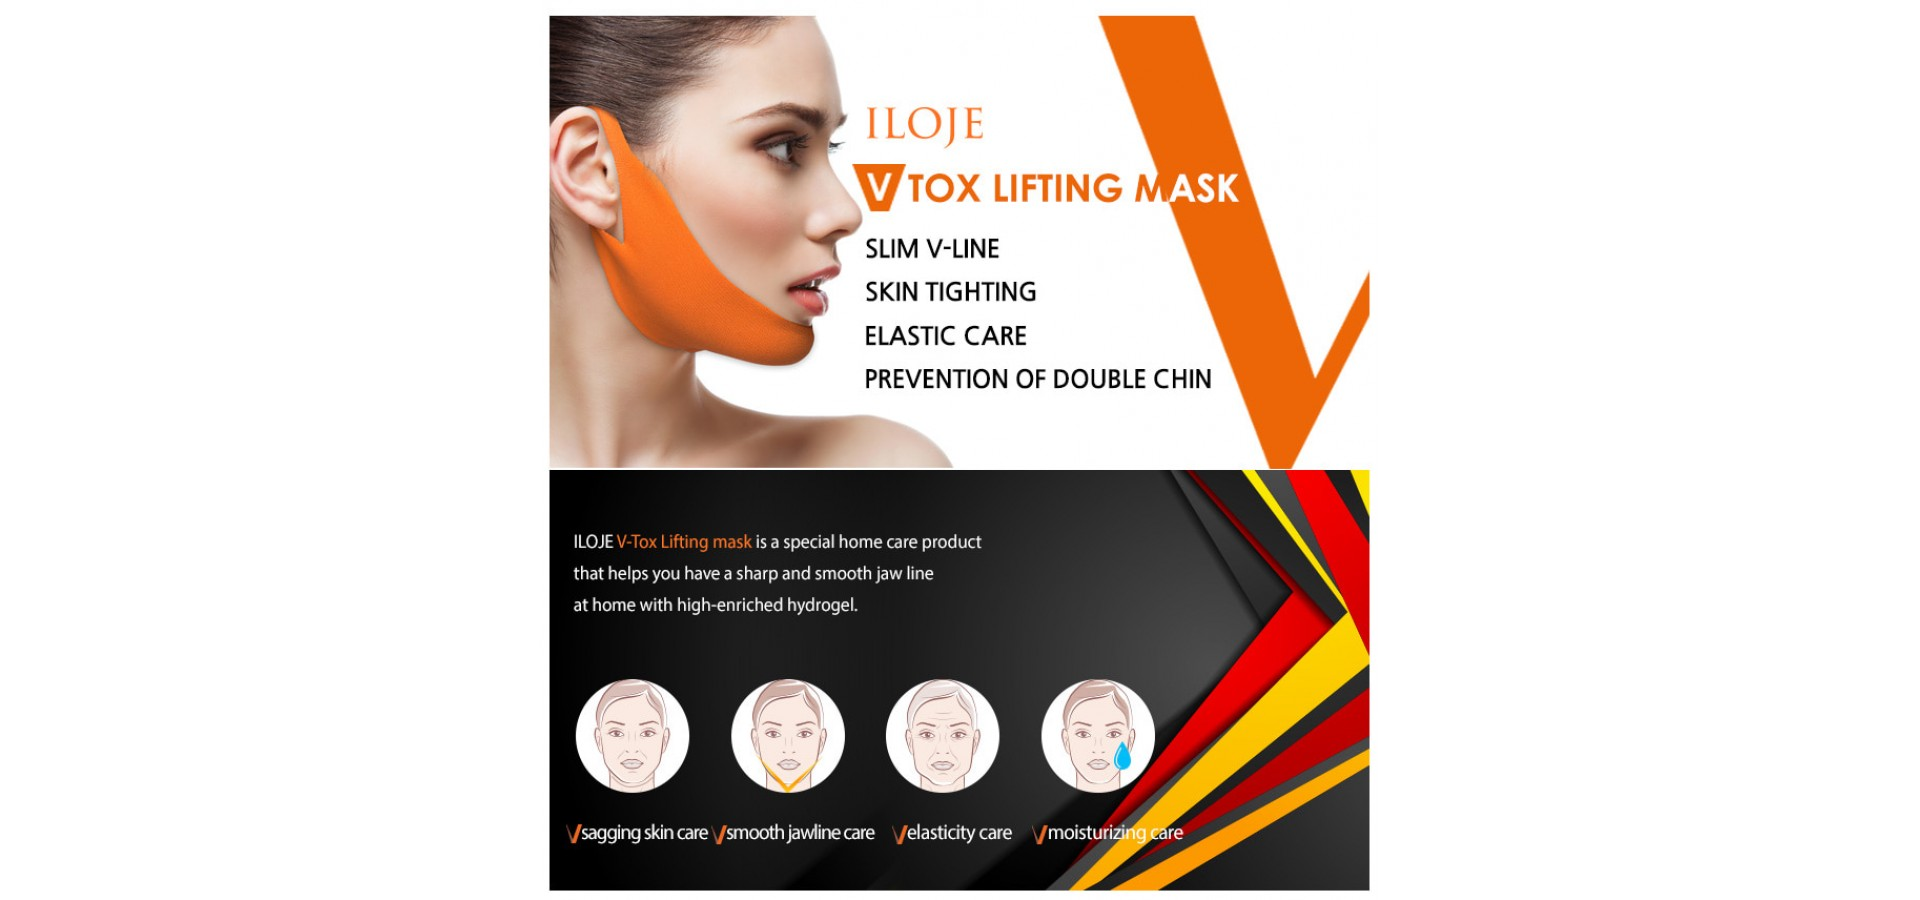 V-tox  lifting mask